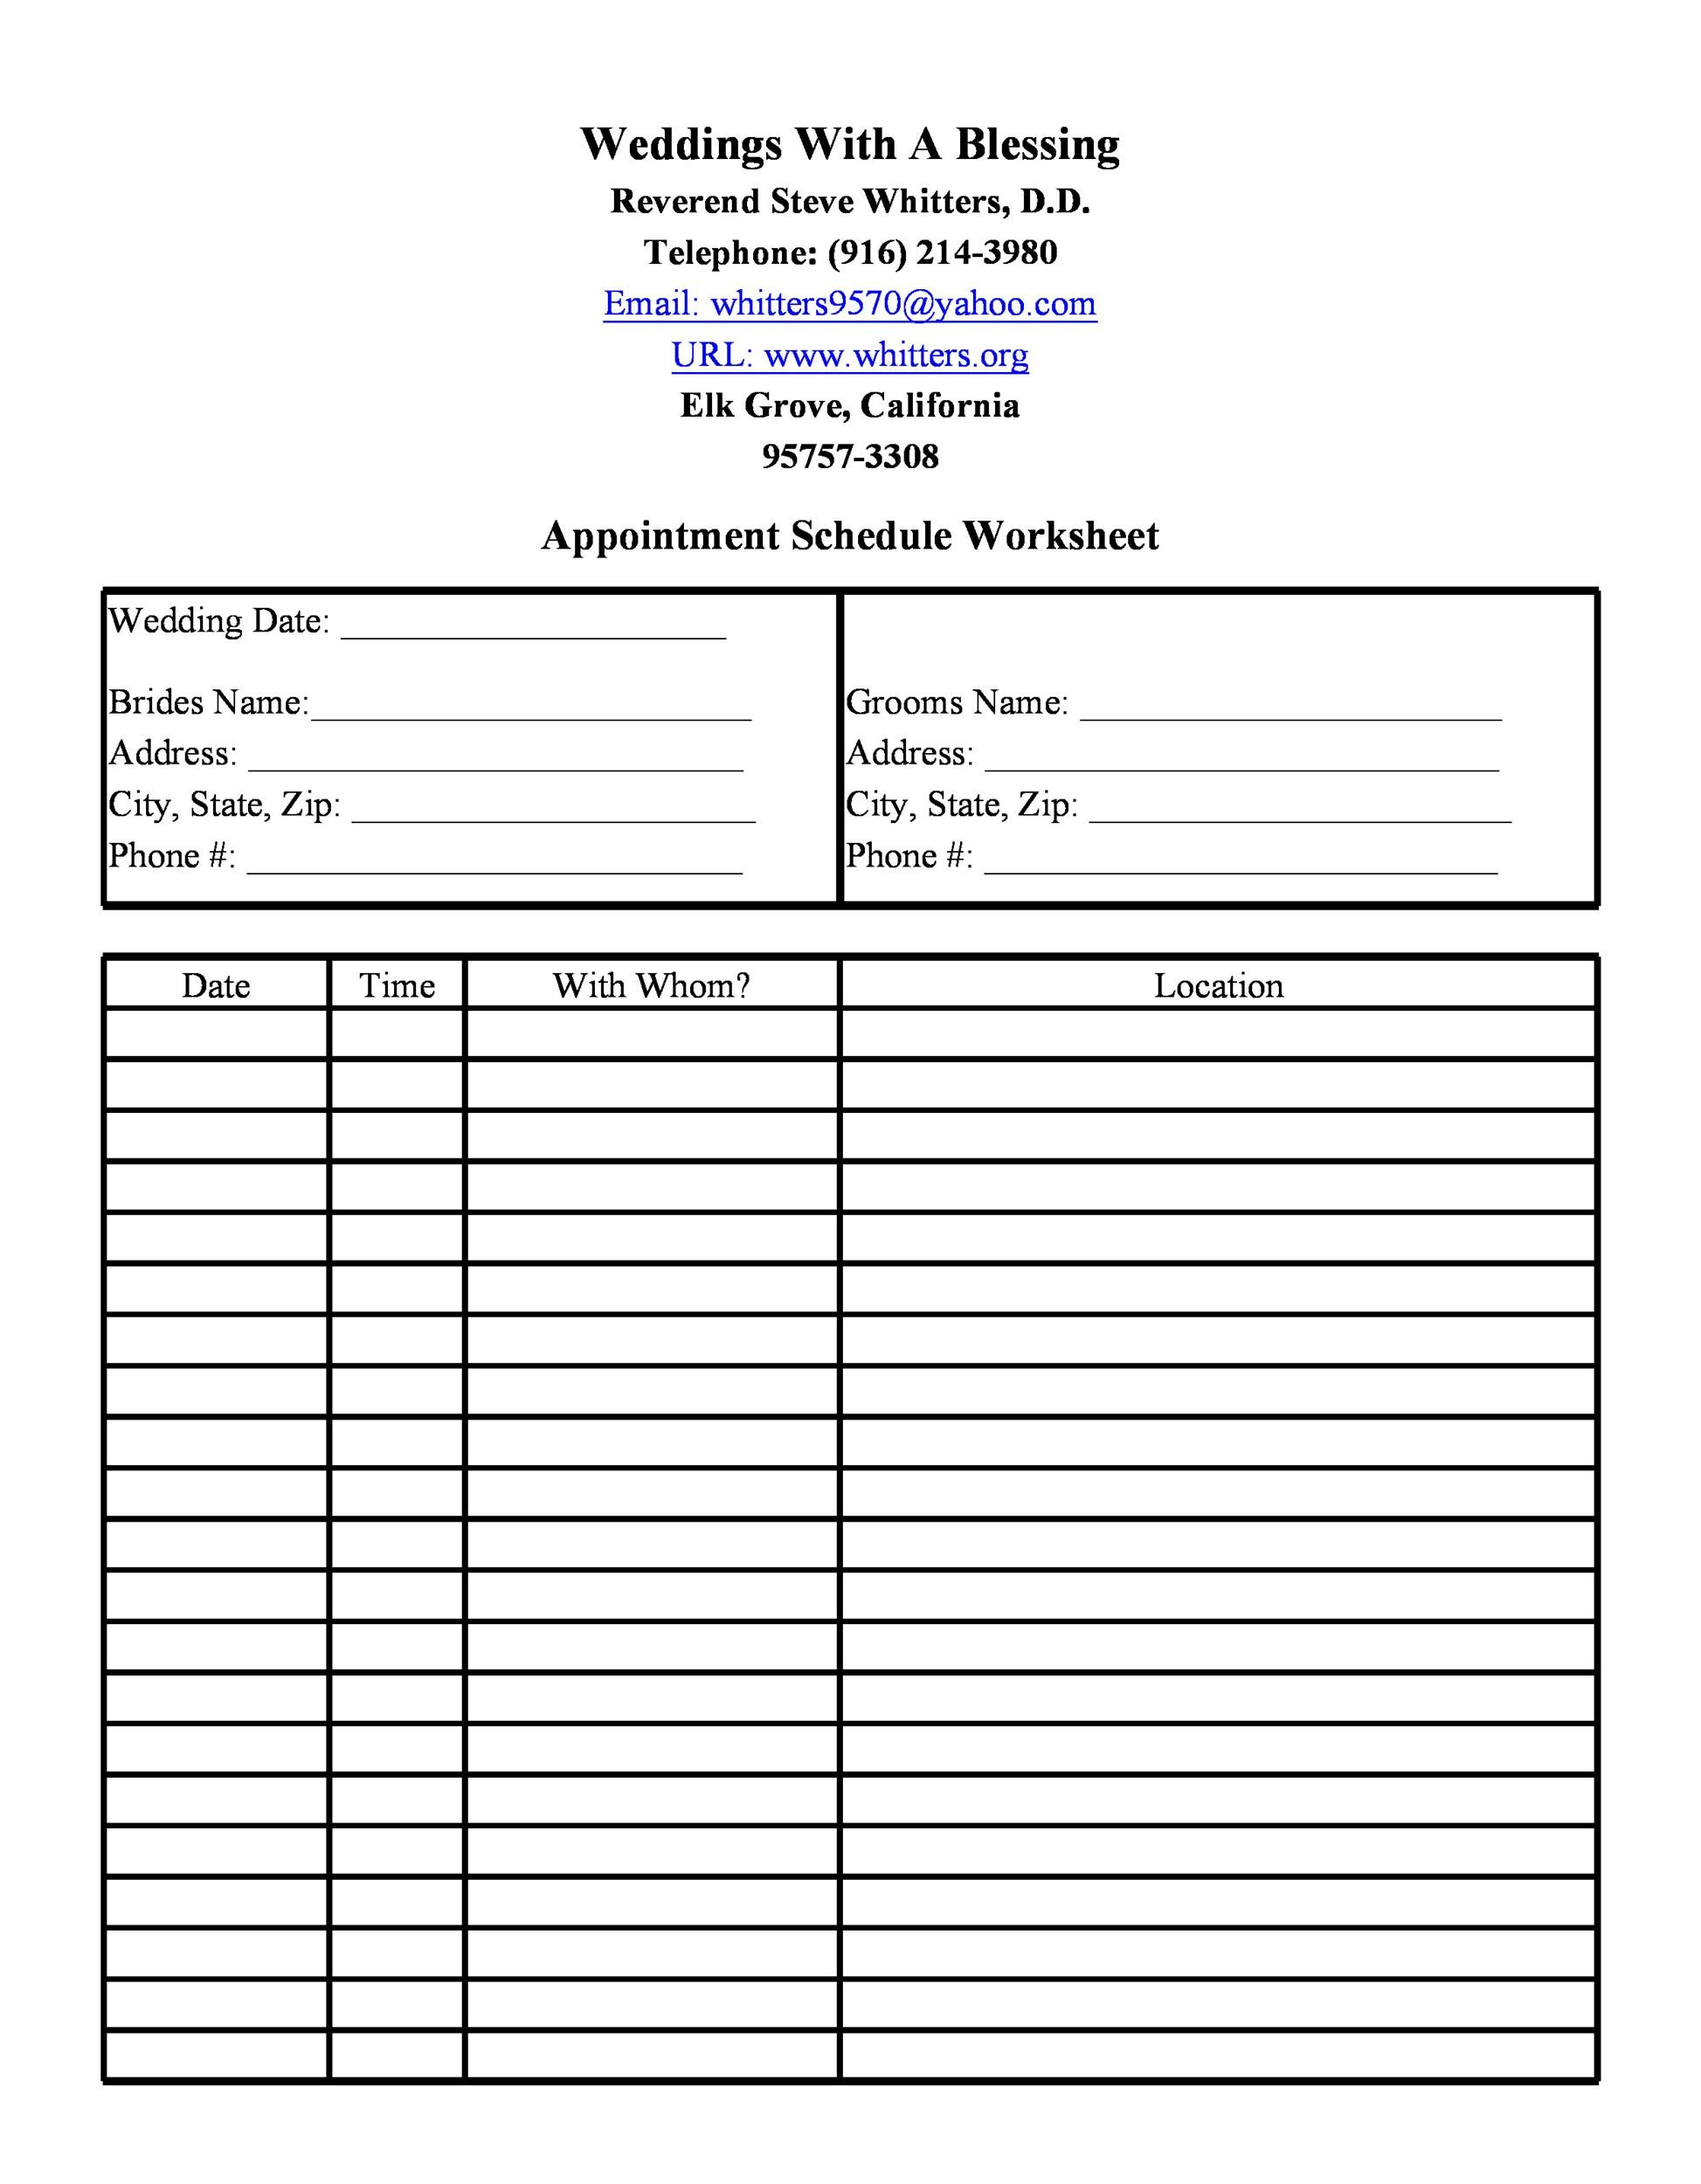 Free appointment schedule template 08